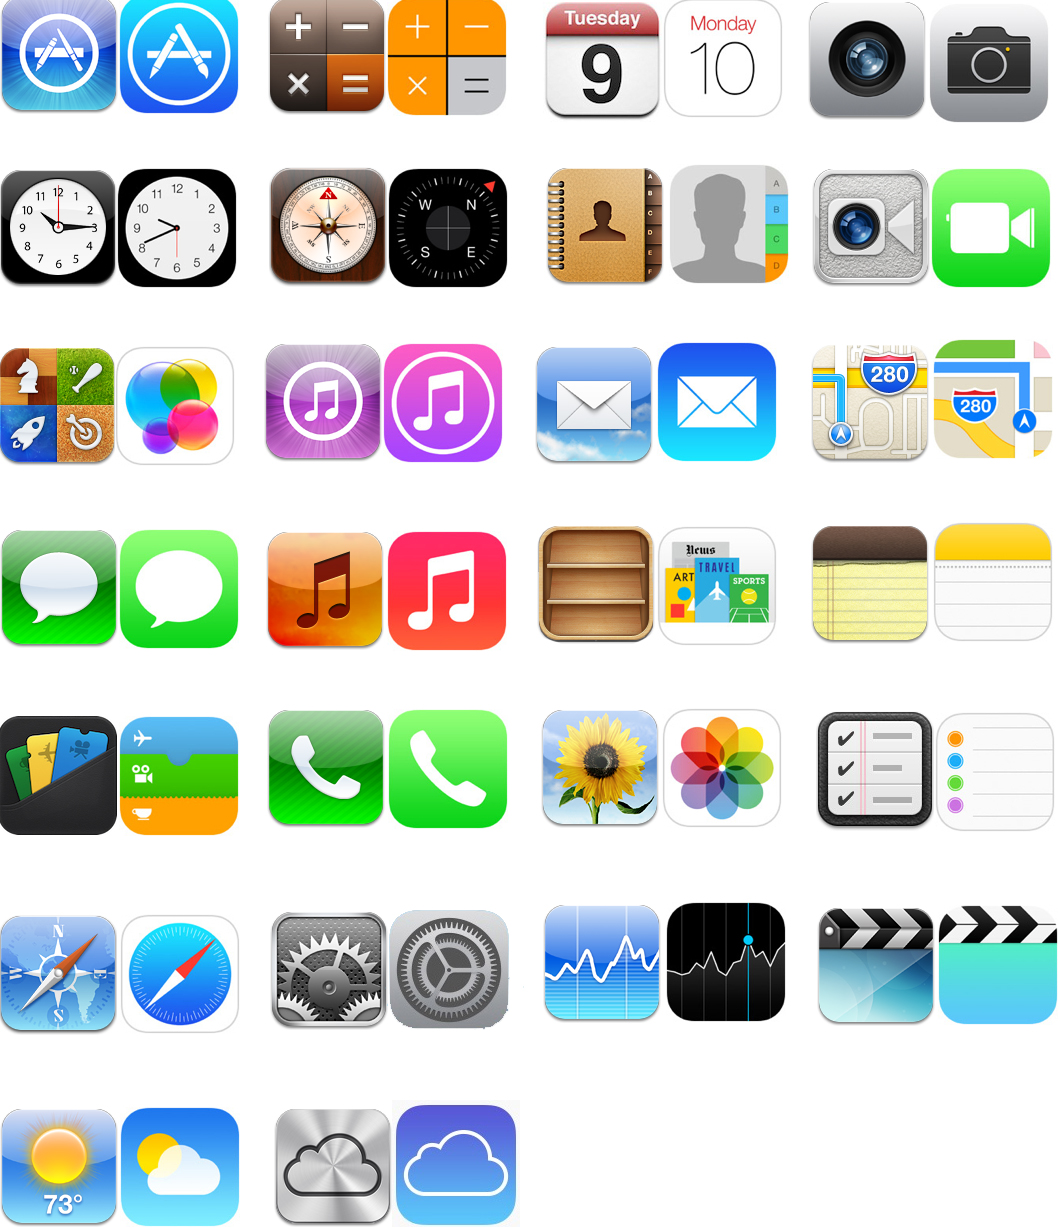 12 IOS 6 Icons Images